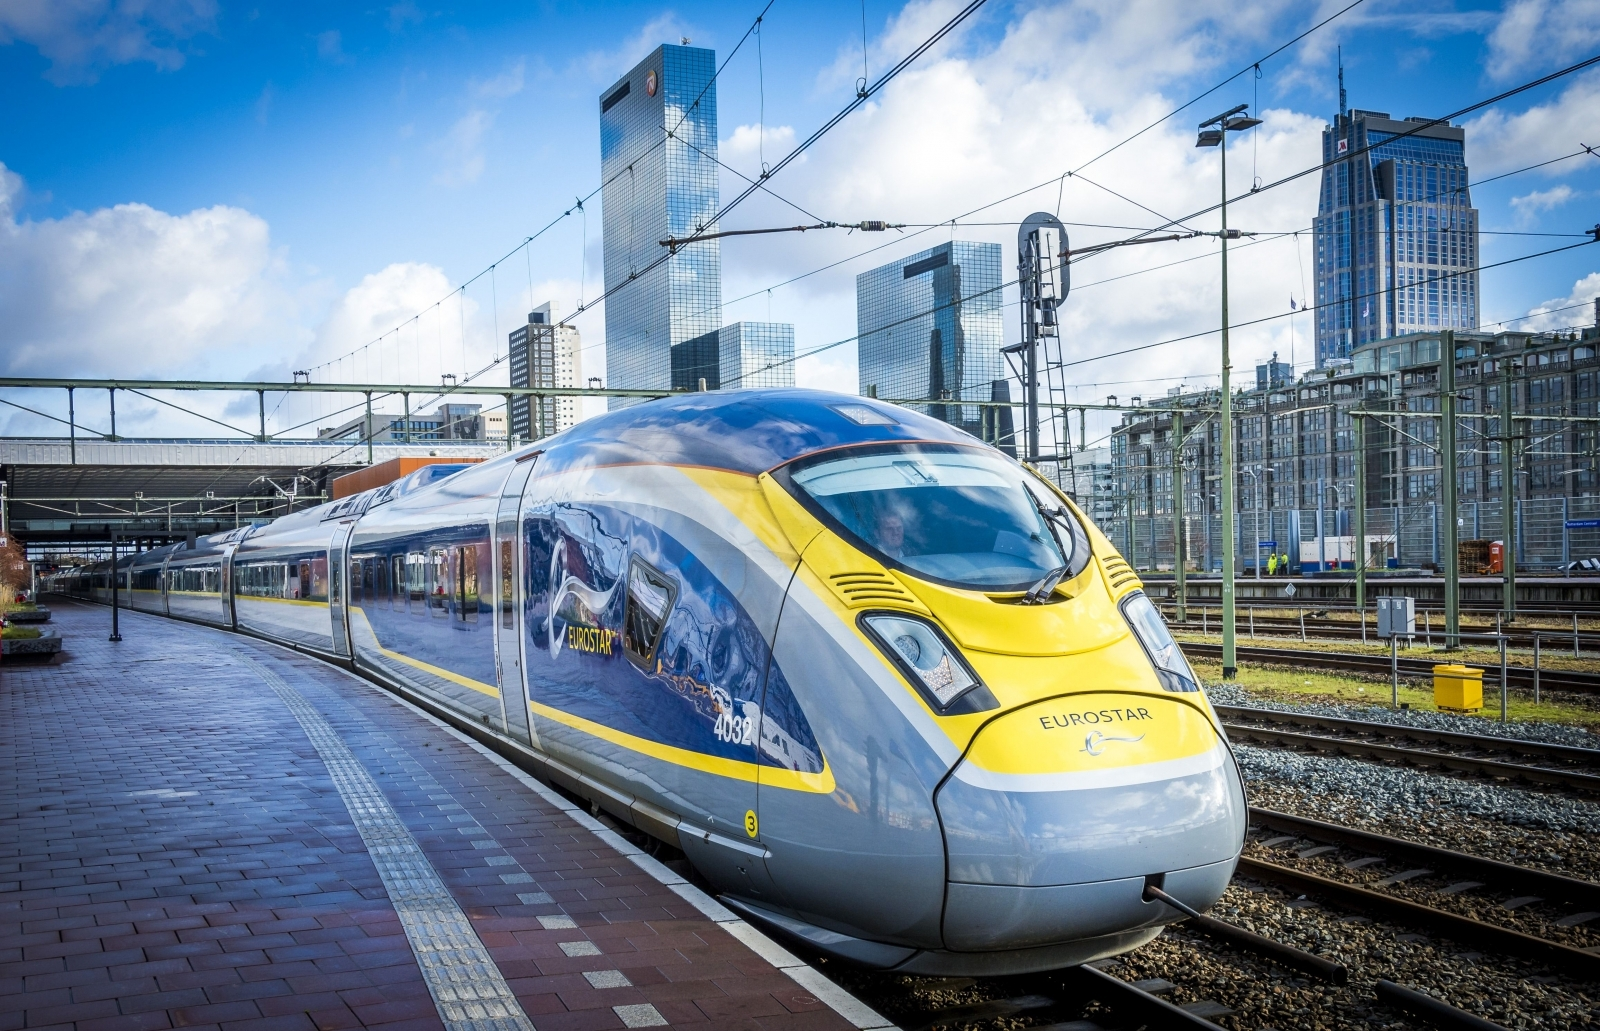 Eurostar to start direct train service from London to Amsterdam